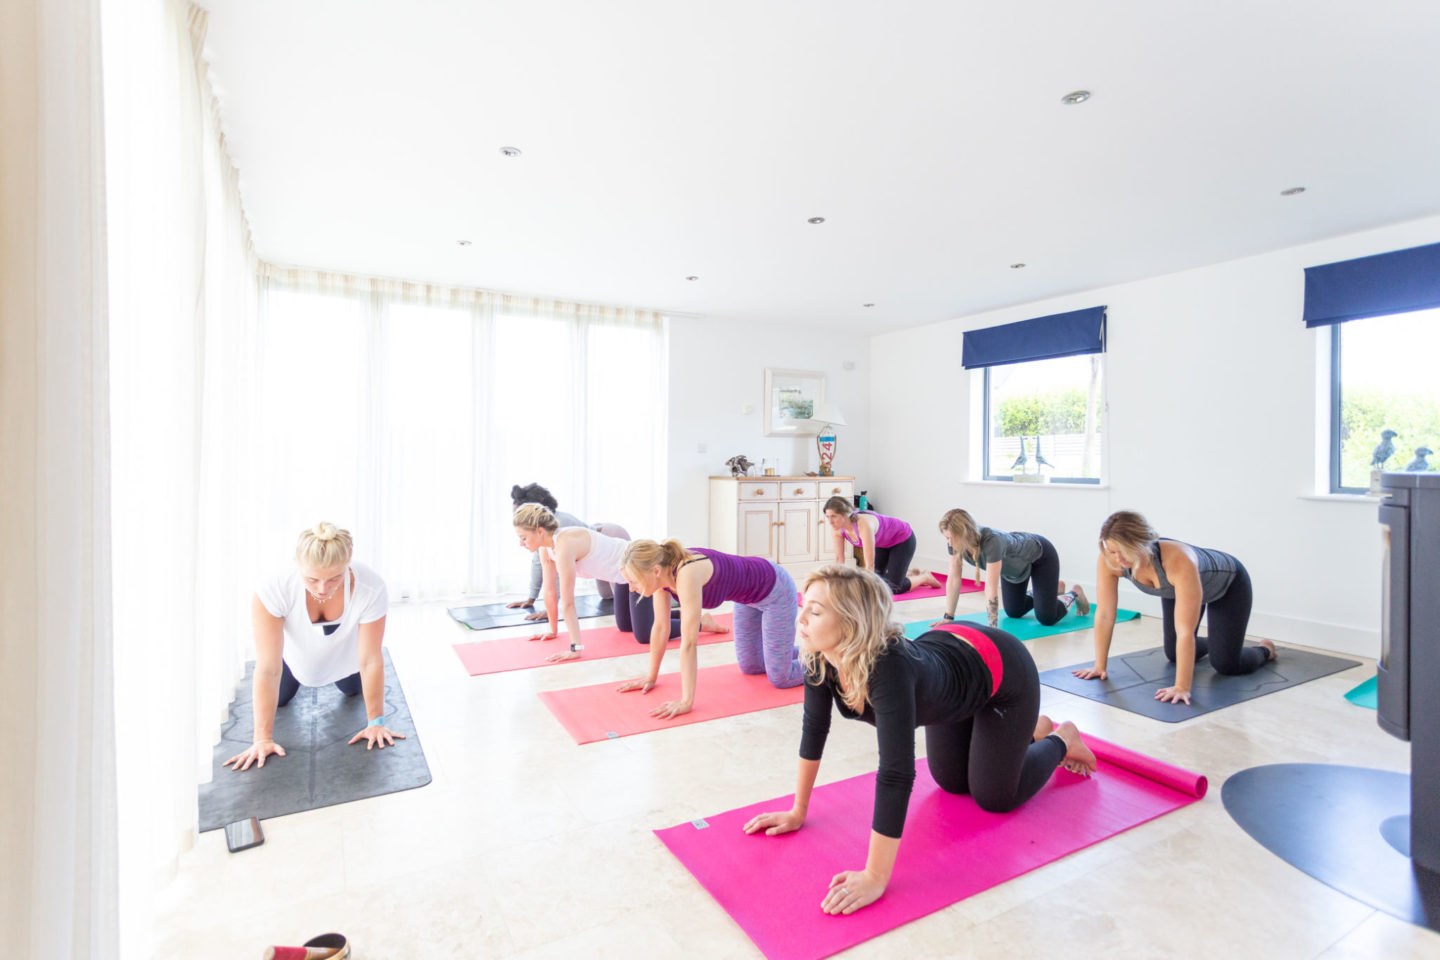 Participants in a home yoga class - Choosing Insurance For Your Fitness Classes